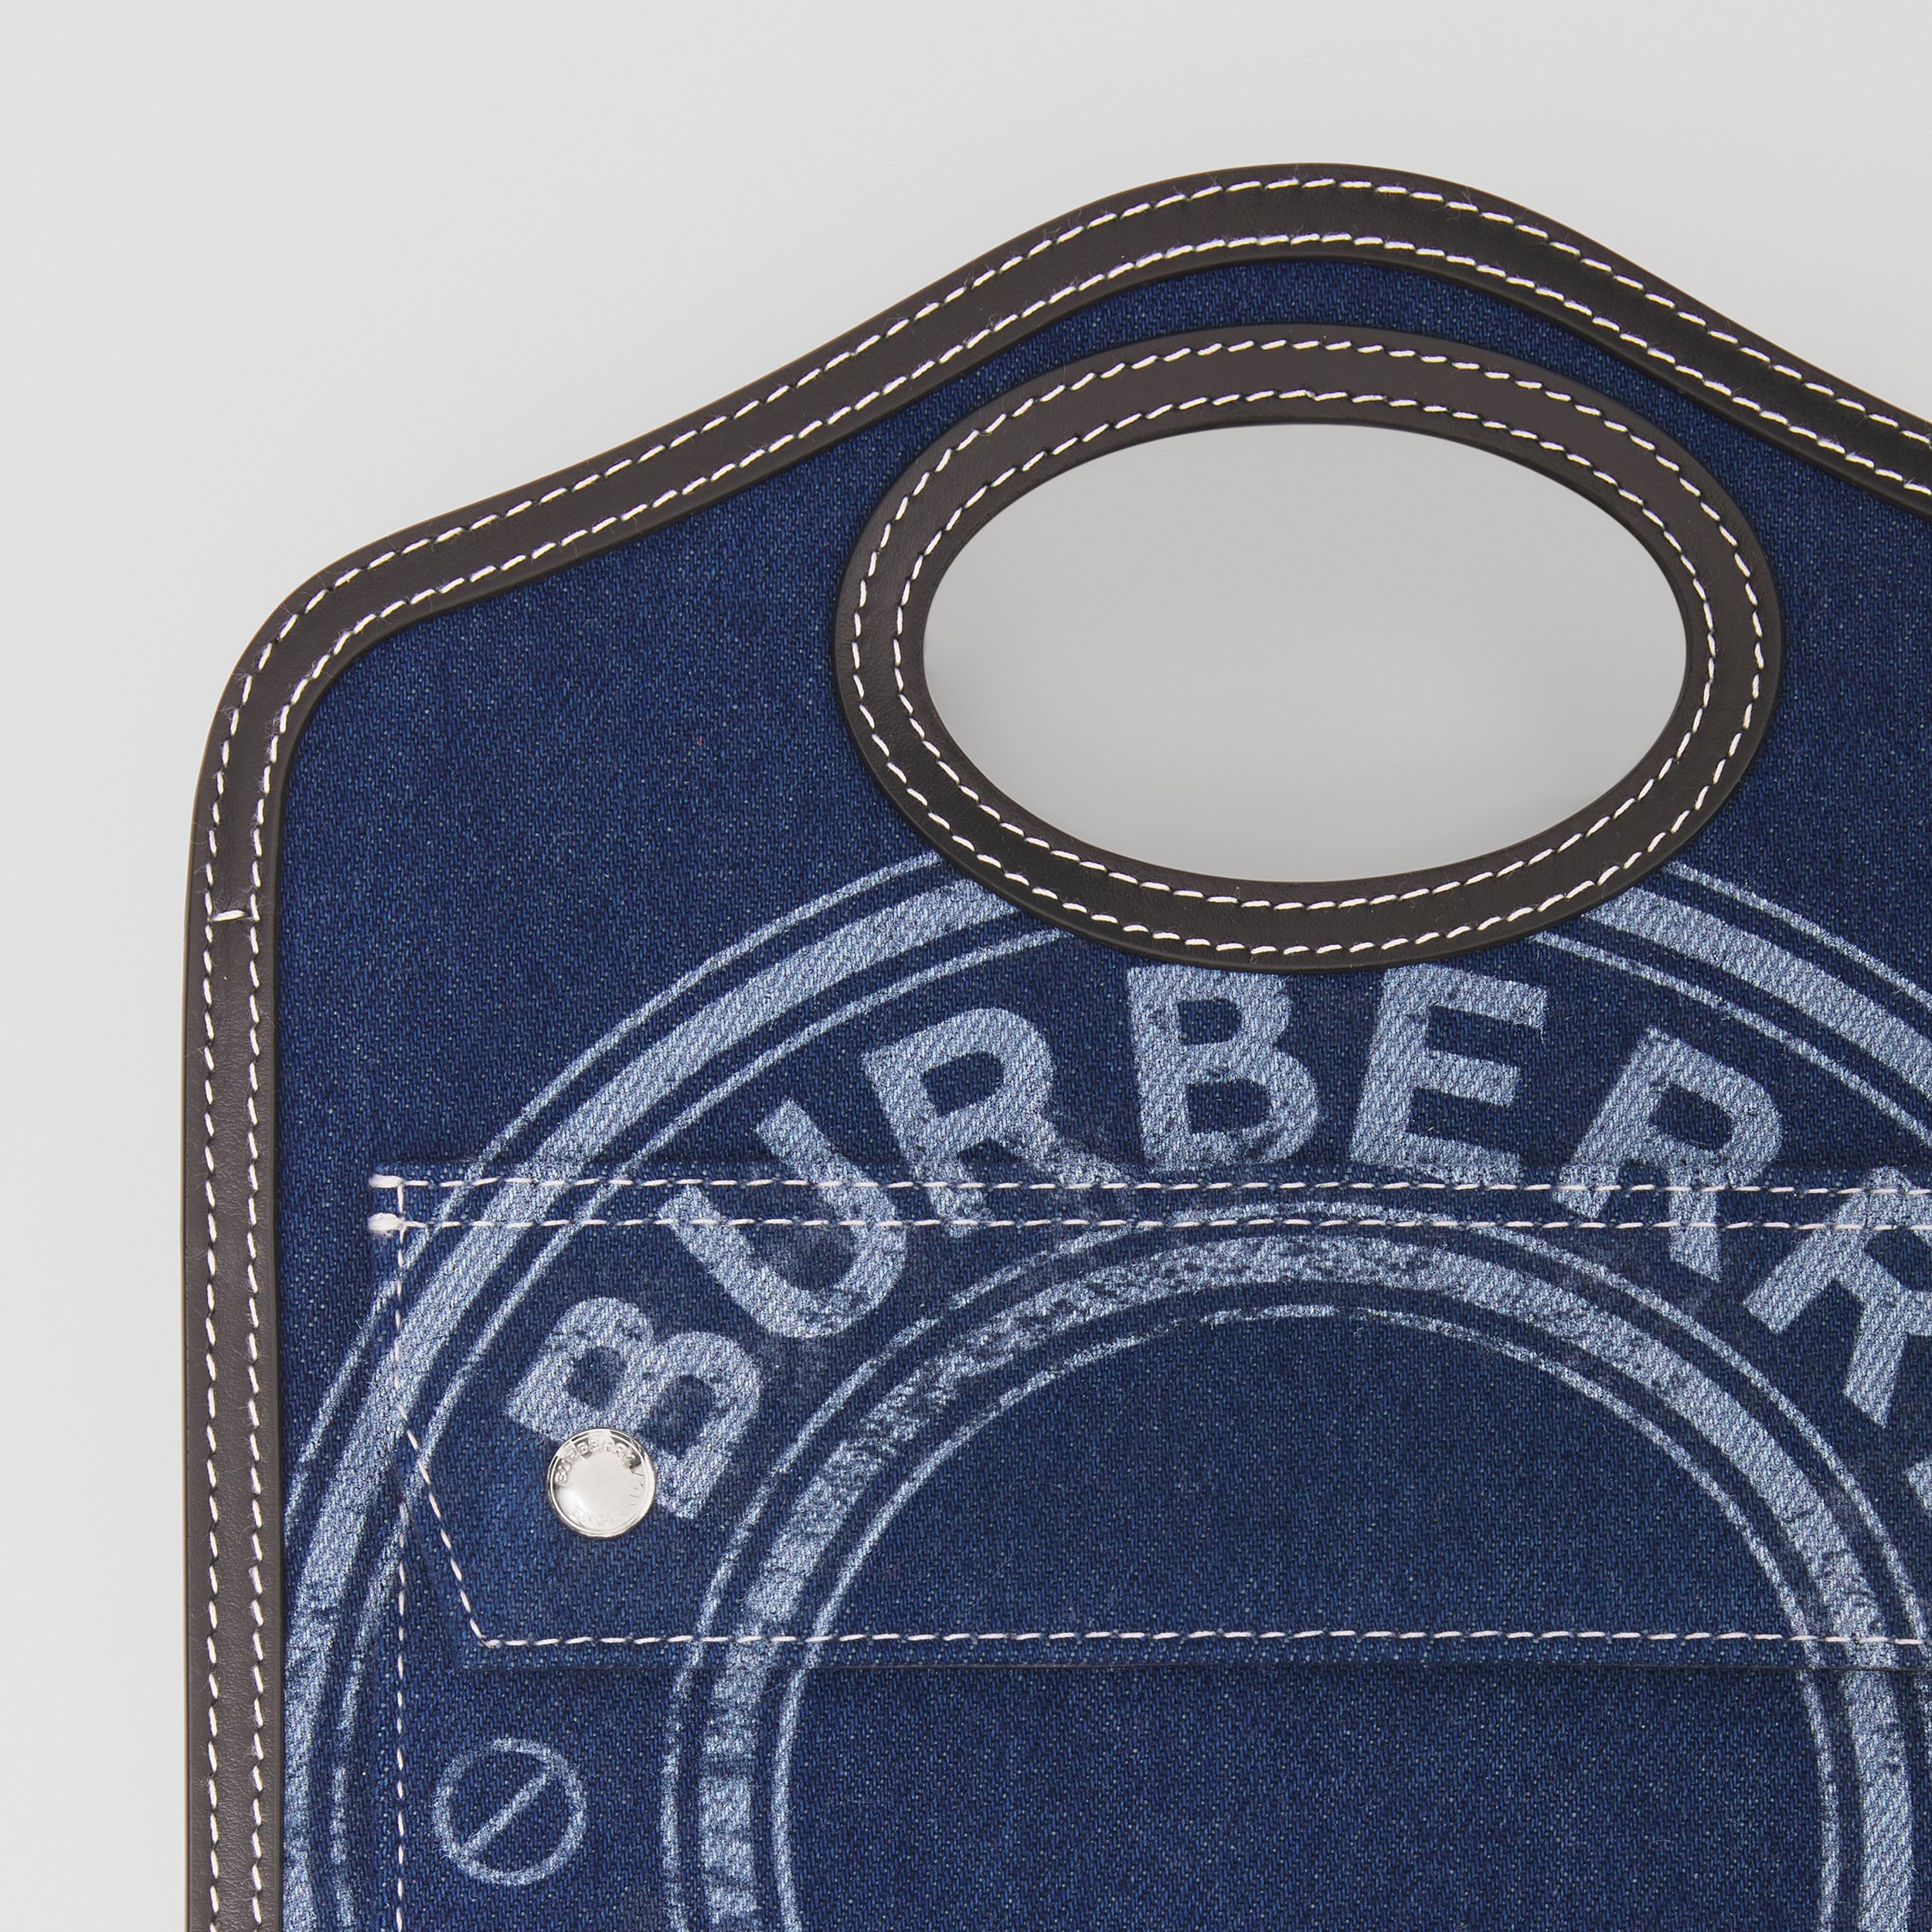 Mini Logo Graphic Denim and Leather Pocket Bag in Dark Canvas Blue - Women | Burberry - 2